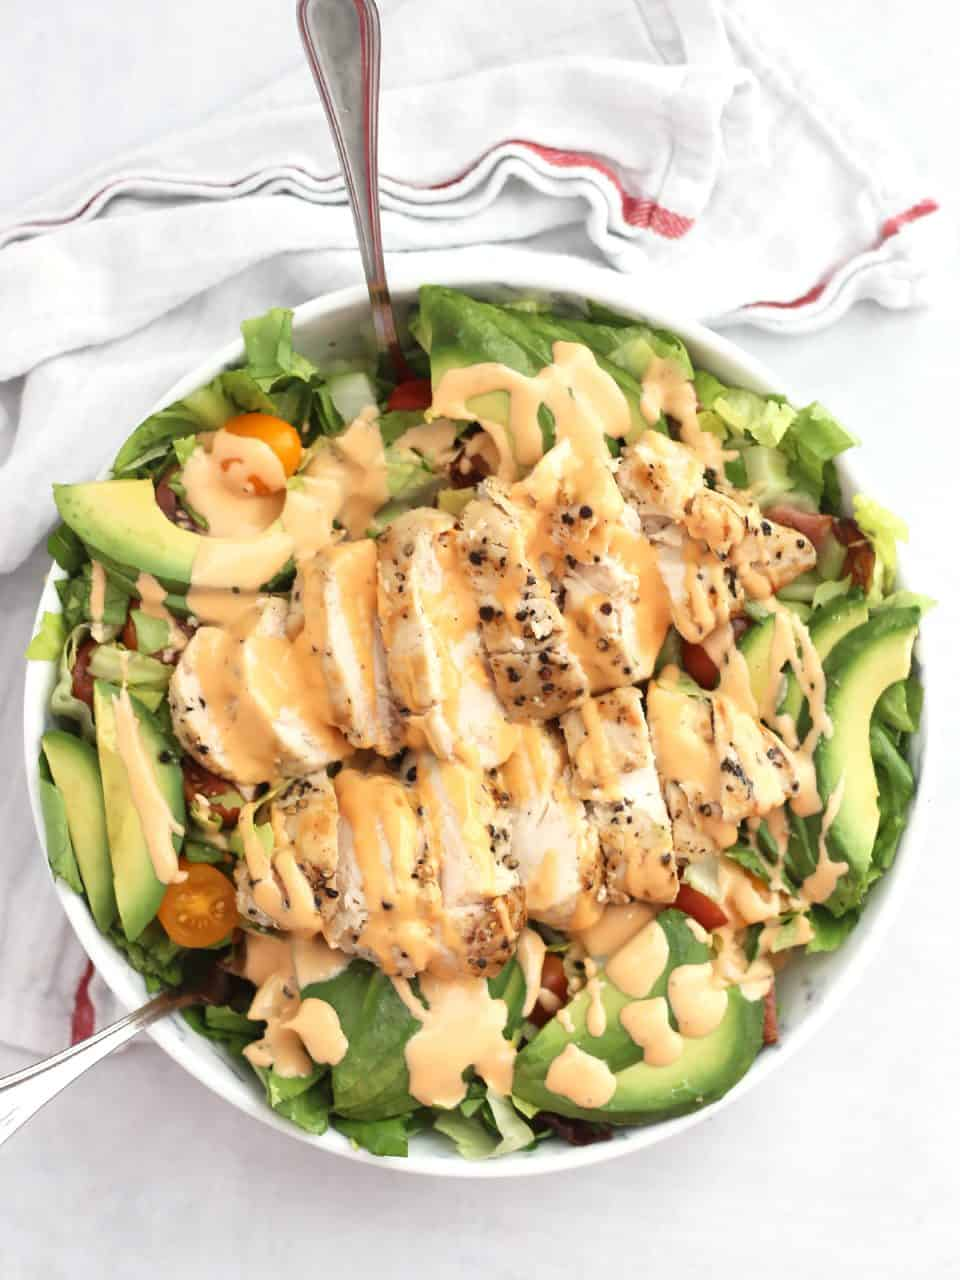 Overhead shot of a BLT chicken avocado salad in a bowl drizzled with a sauce.